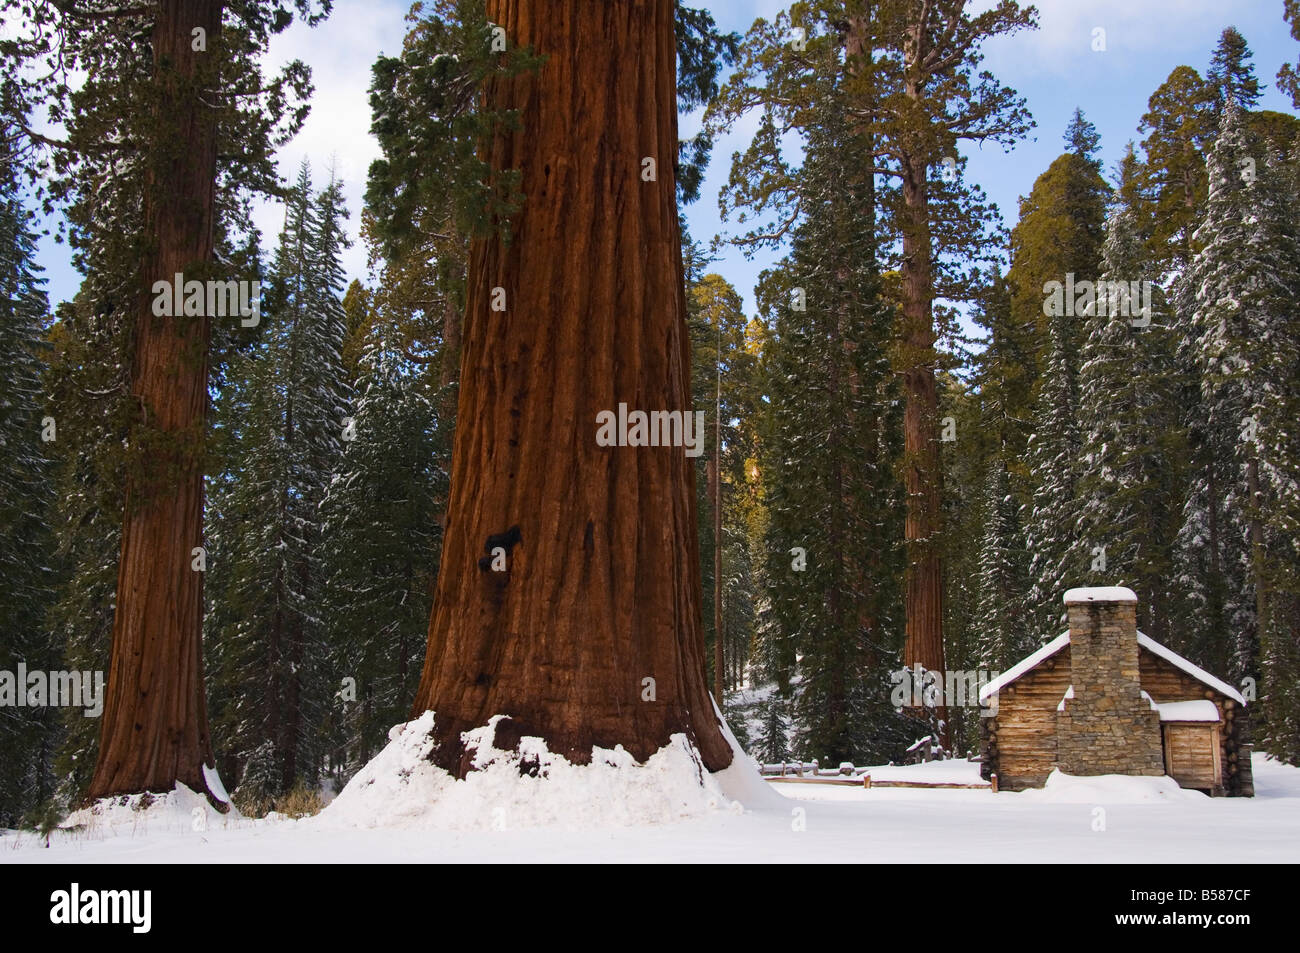 Stone brick museum dwarfed by giant sequoia trees at Mariposa Grove after fresh snowfall Yosemite National Park - Stock Image